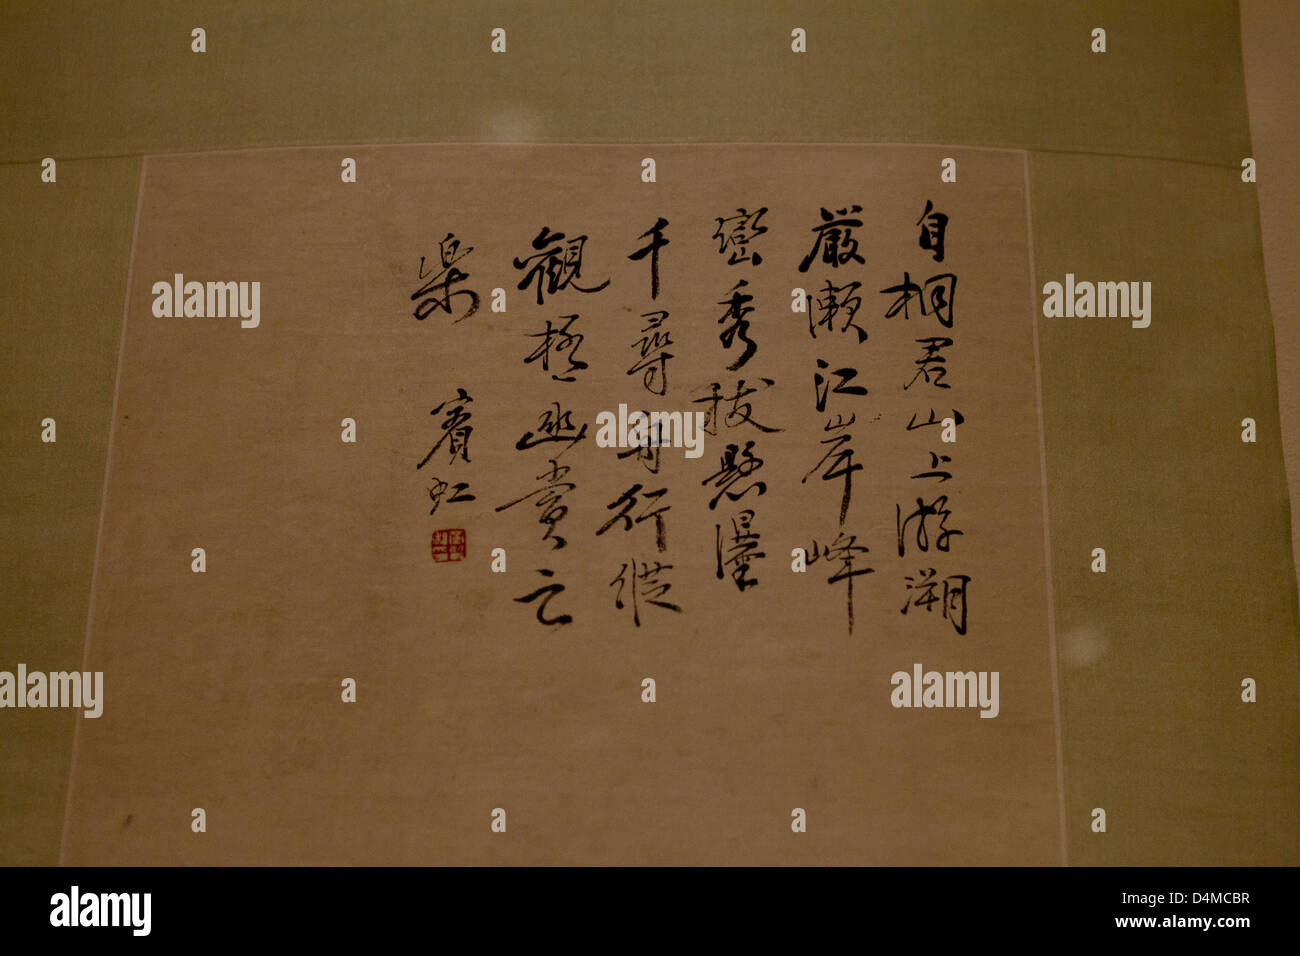 Chinese poem calligraphy written in cursive script - Stock Image